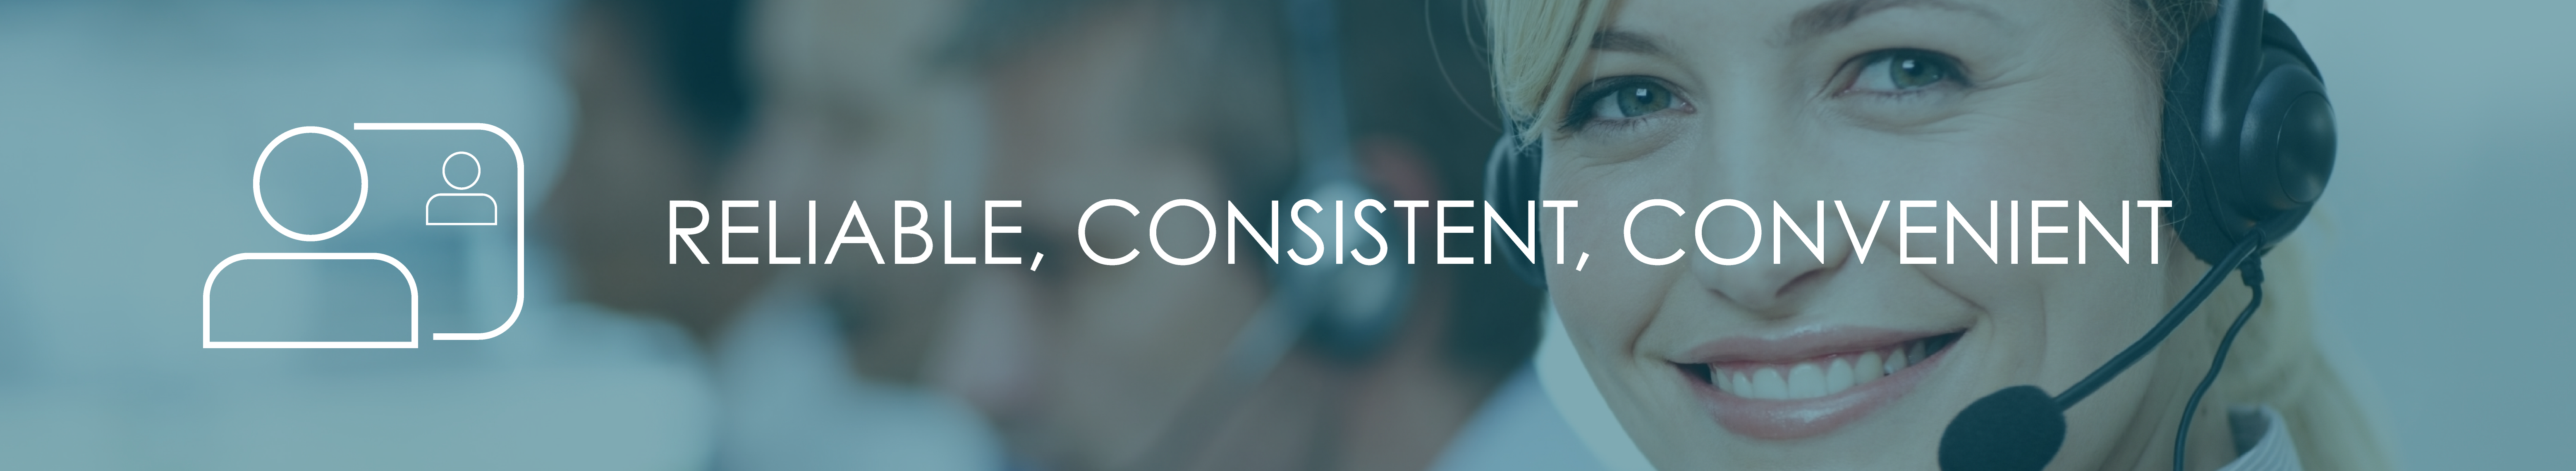 Audio Conferencing | Reliable, Consistent, Convenient